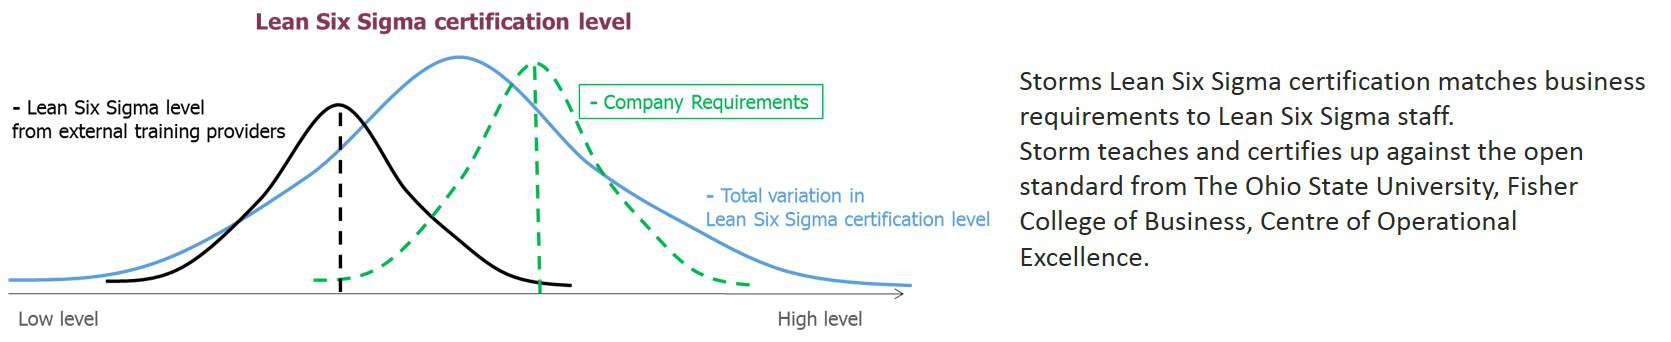 Read More About Lean Six Sigma Certification